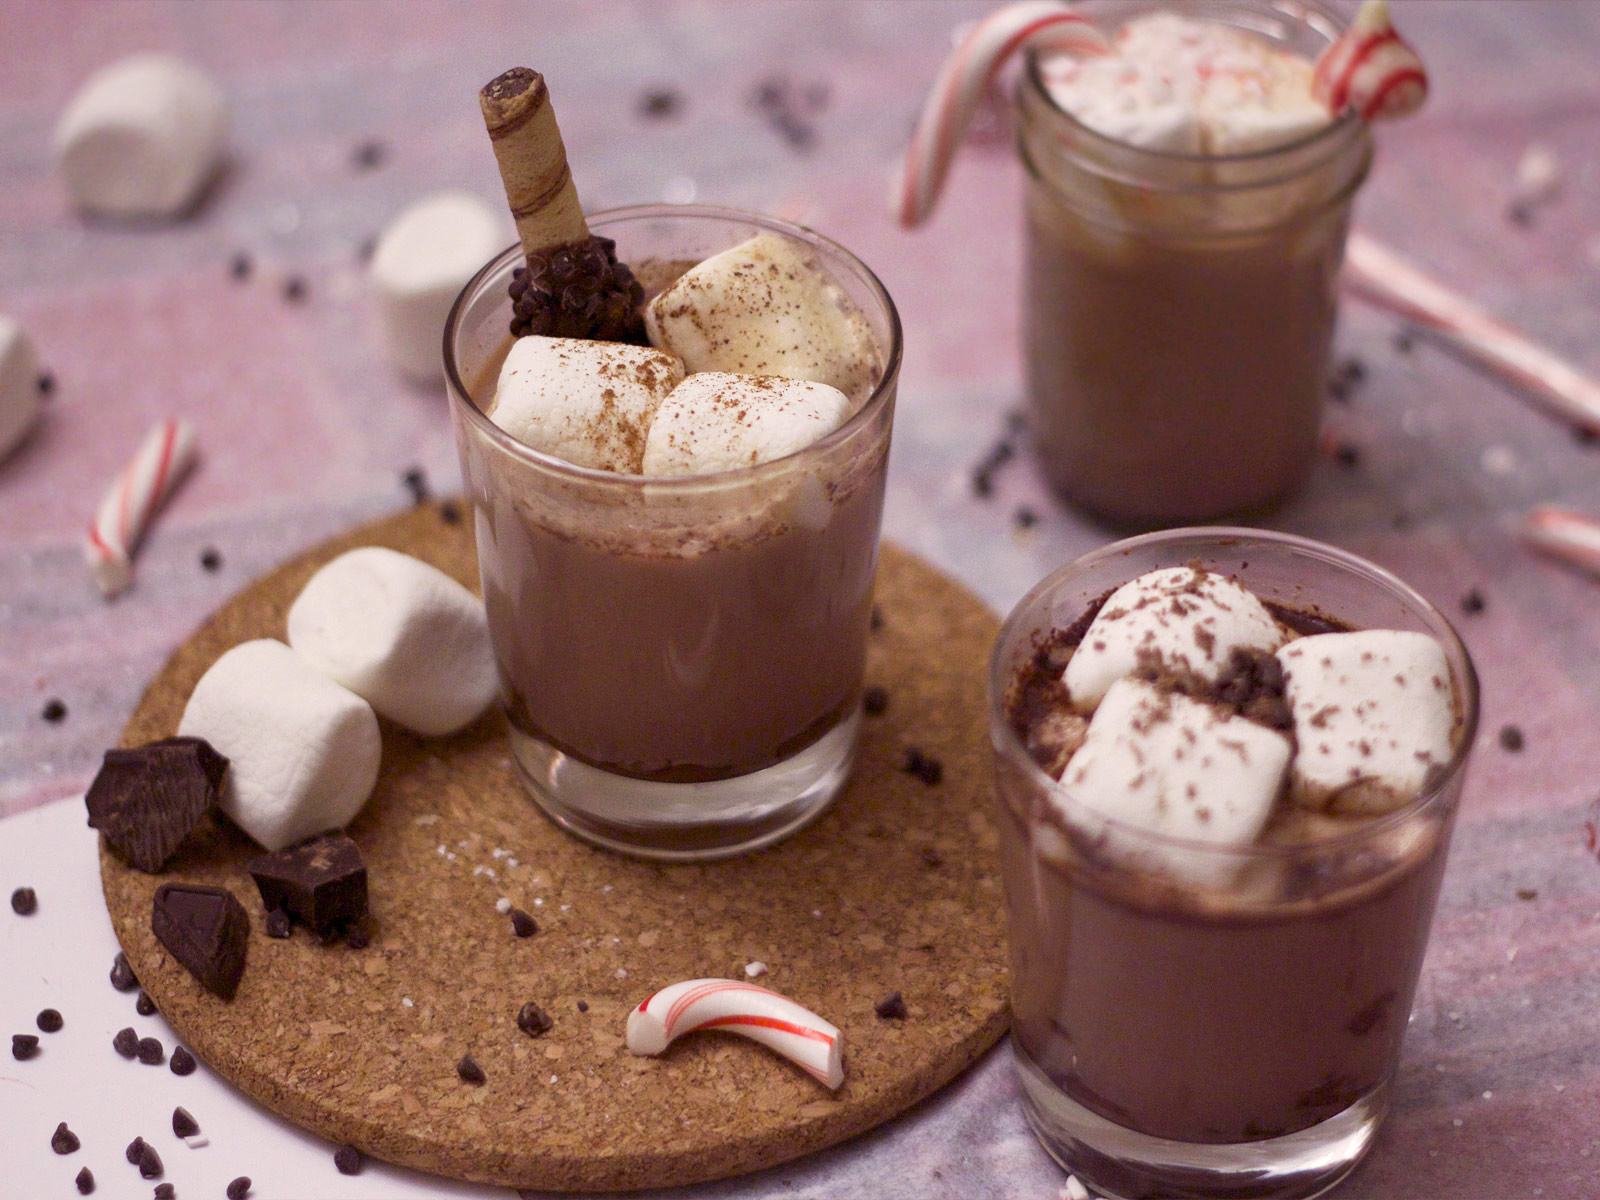 spiked hot chocolate cocoa recipes cocktails rum baileys irish cream peppermint nutella captain morgan cinnamon nutmeg spices spicy